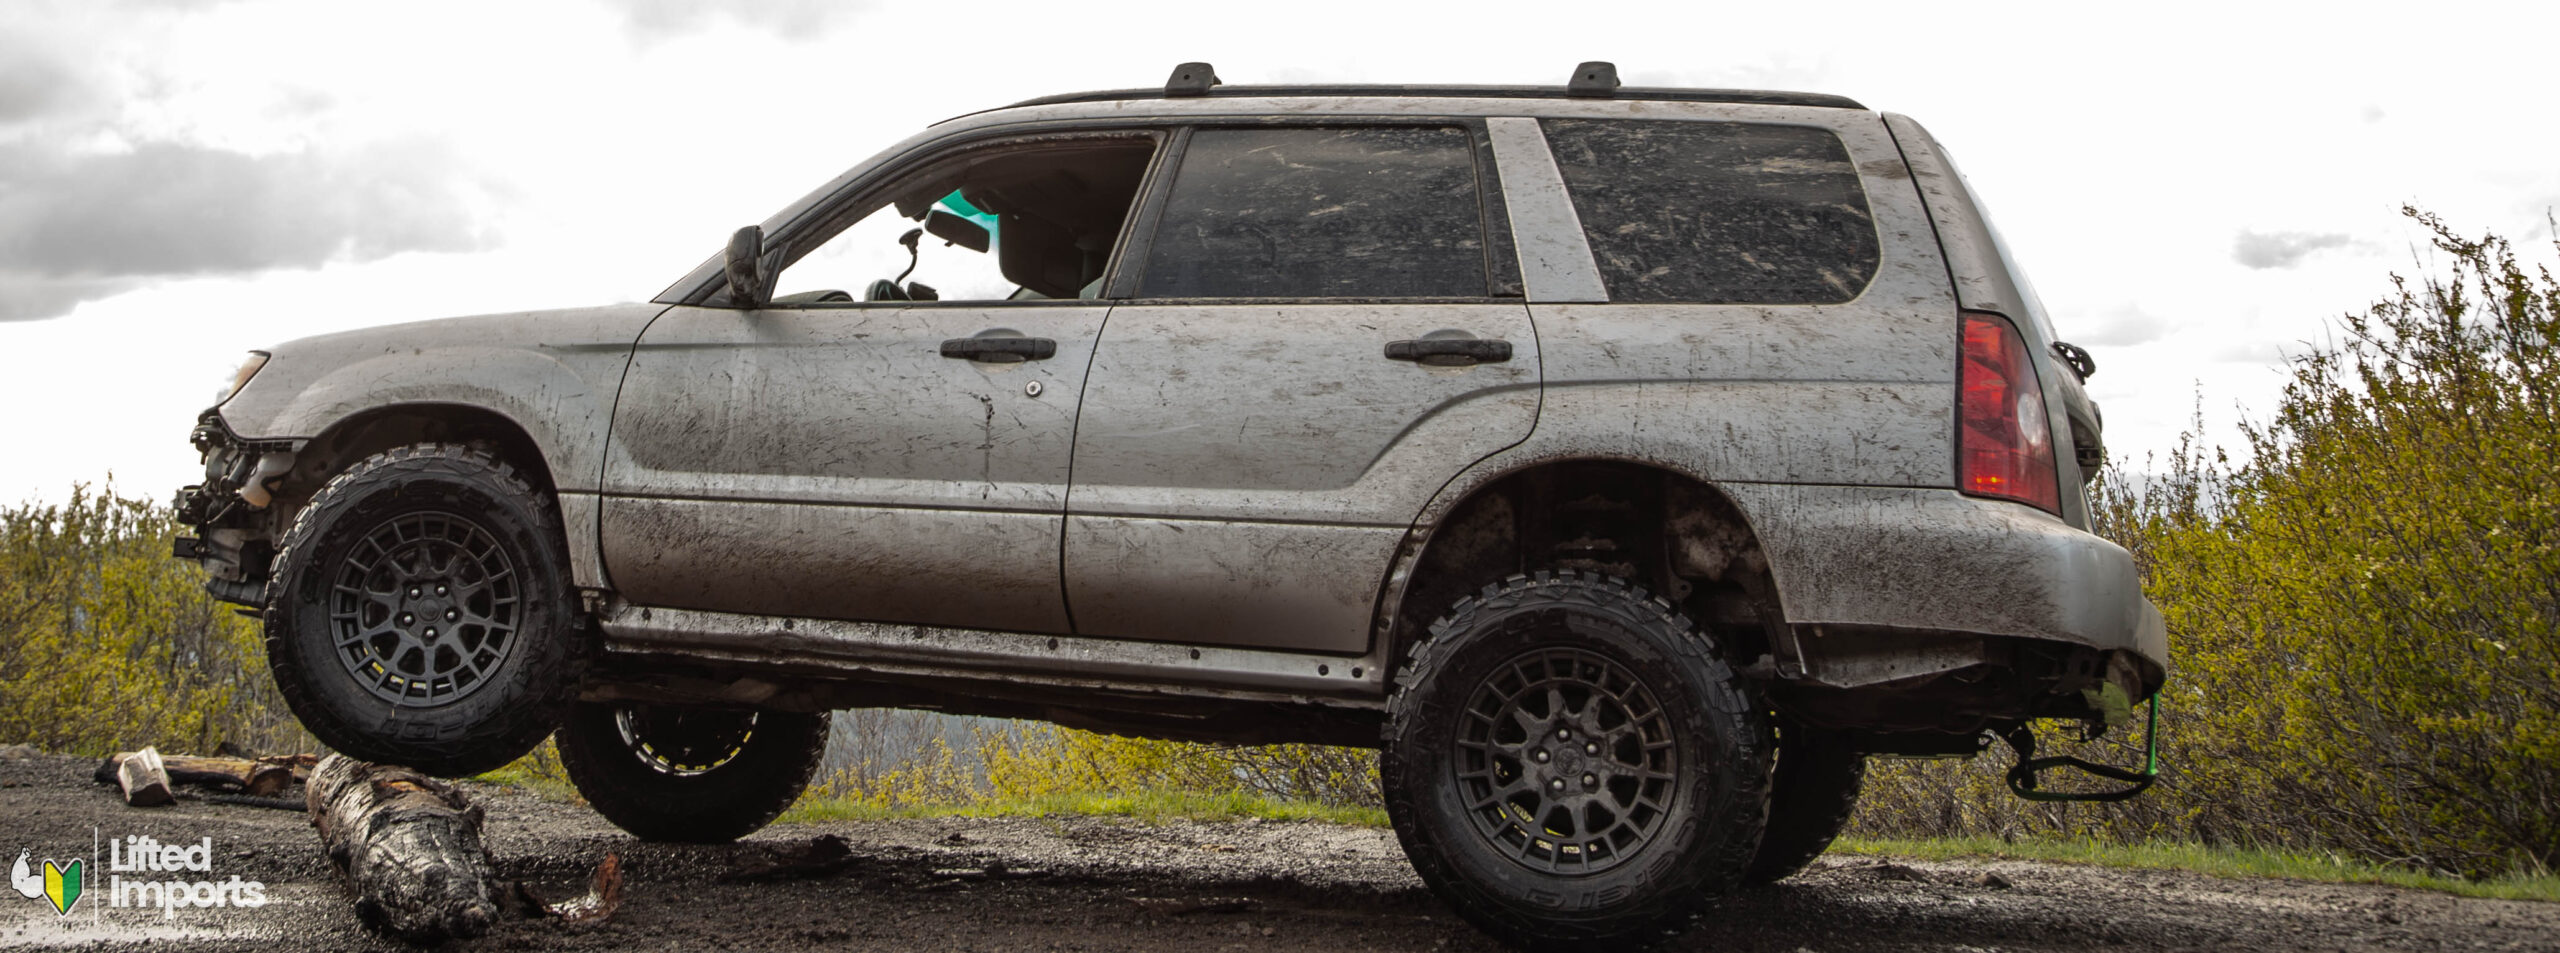 lifted subaru forester with mud terrain tires and lift kit